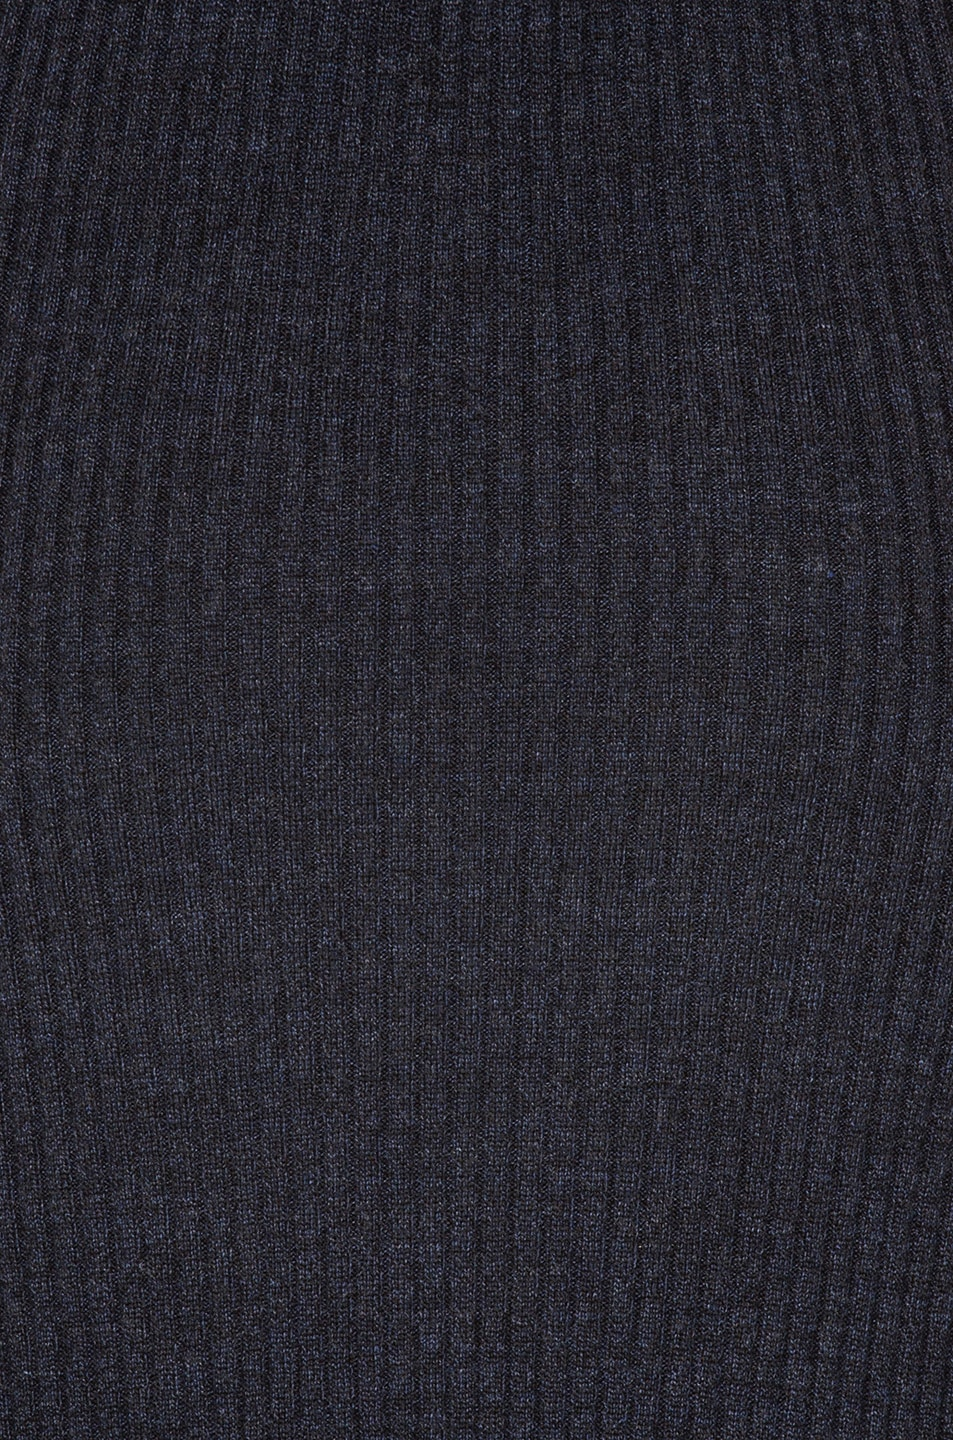 Image 6 of See By Chloe Knit Midi Dress in Indigo